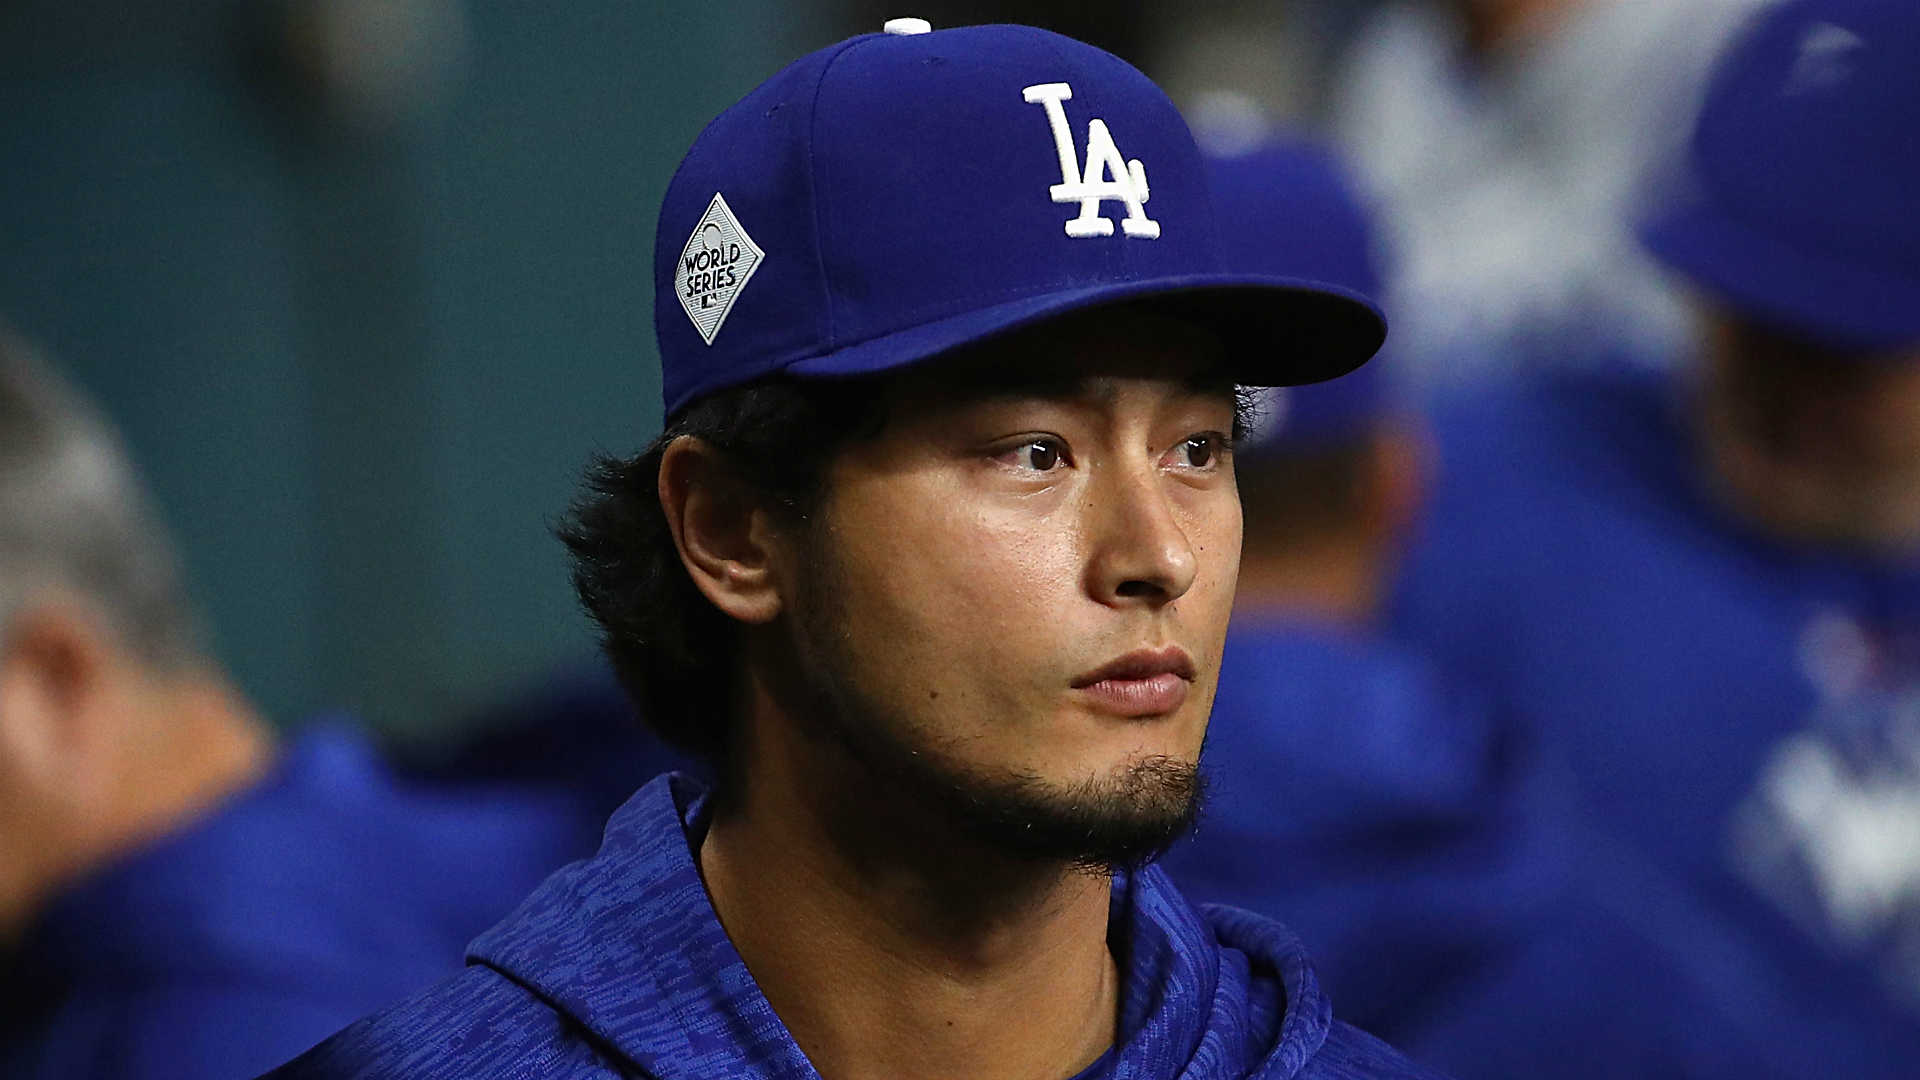 Cubs land Yu Darvish, cement World Series contender status